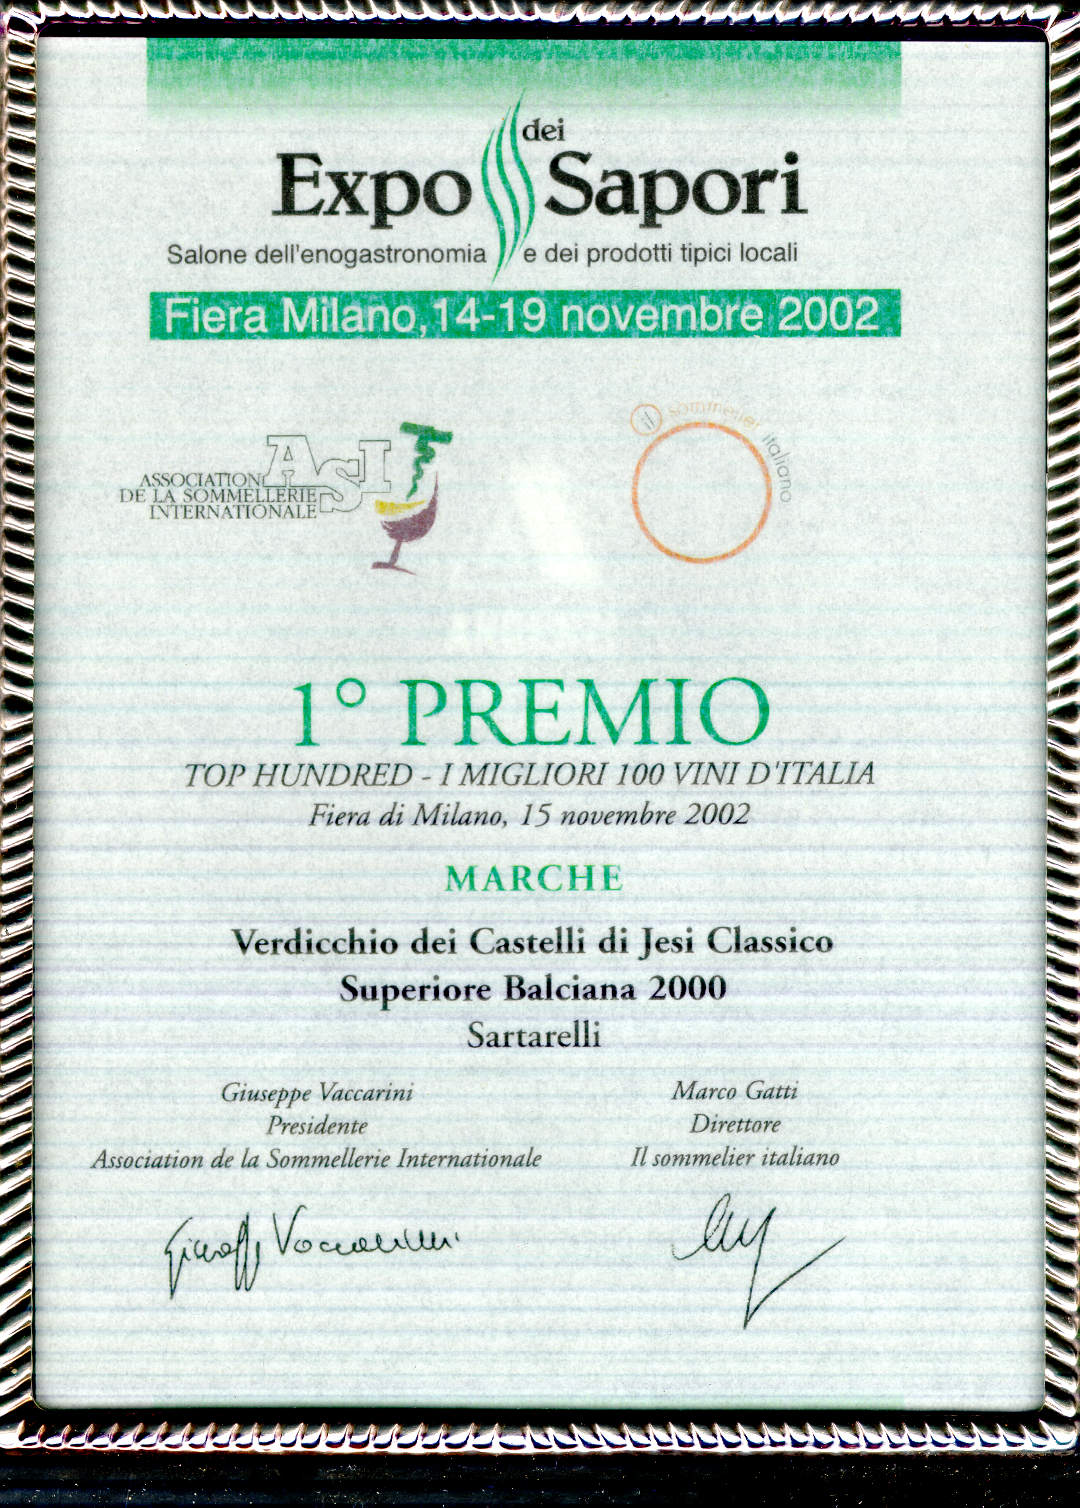 Balciana Sartarelli 2000 - 1° Premio Top Hundred Vini d'Italia (2002)